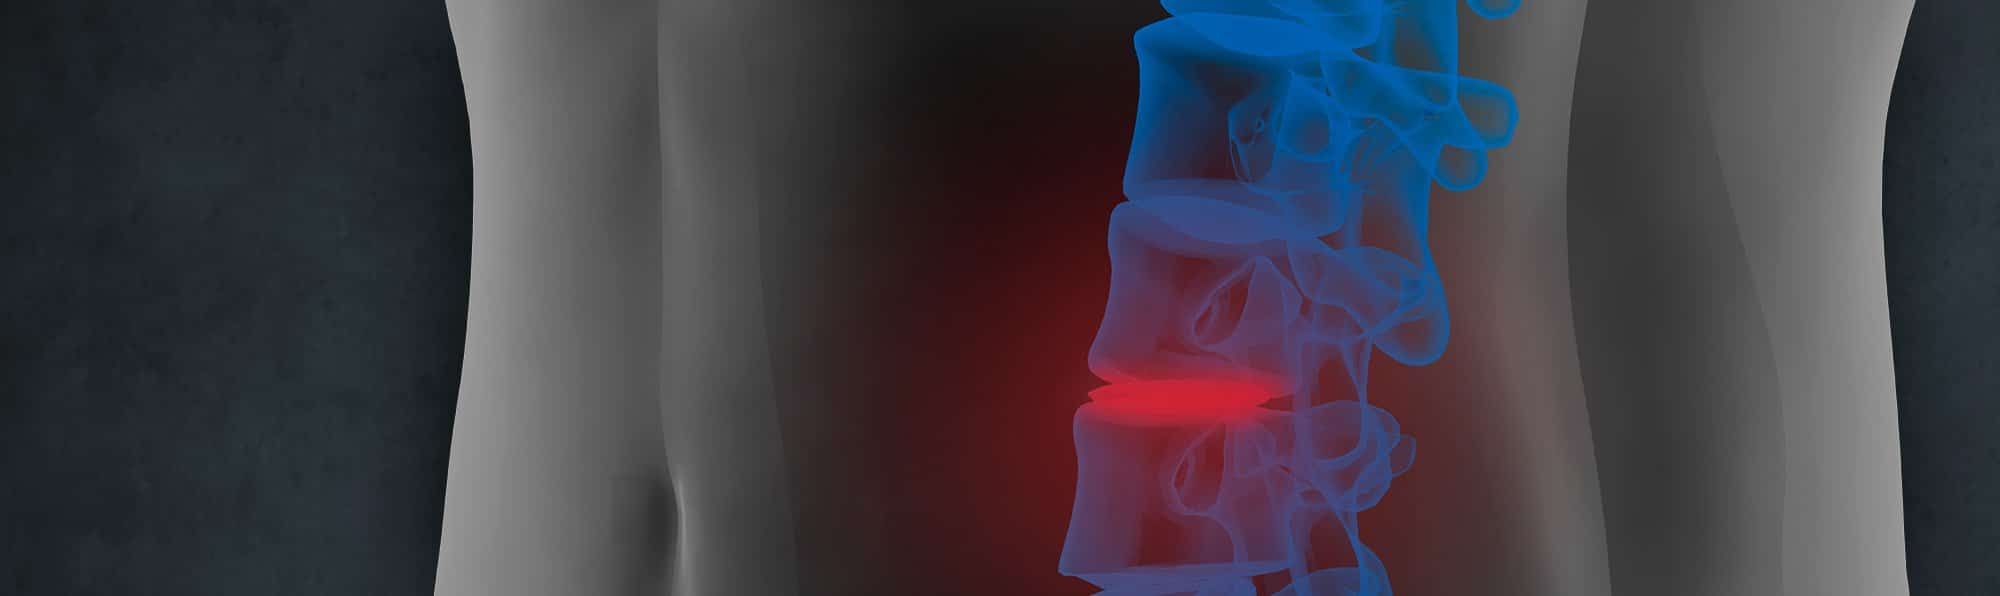 Orange county ca s premier non surgical spinal decompression clinic - Pittsburgh S Premier Spine Disc Specialists